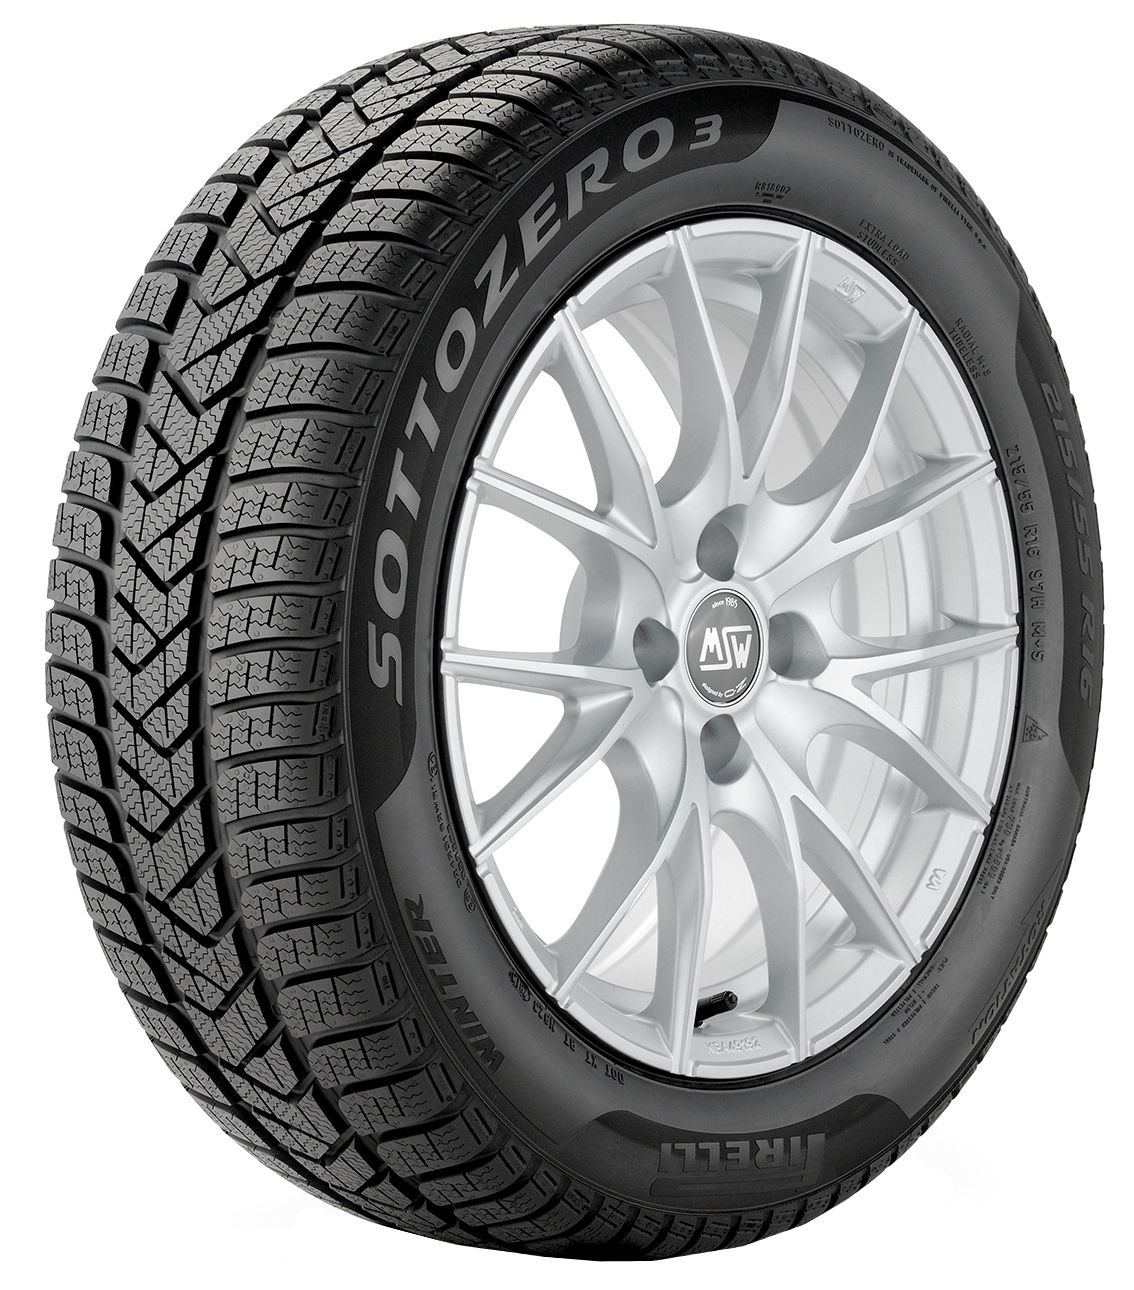 PIRELLI WINTER SOTTOZERO 3 225//55 R17 101V XL